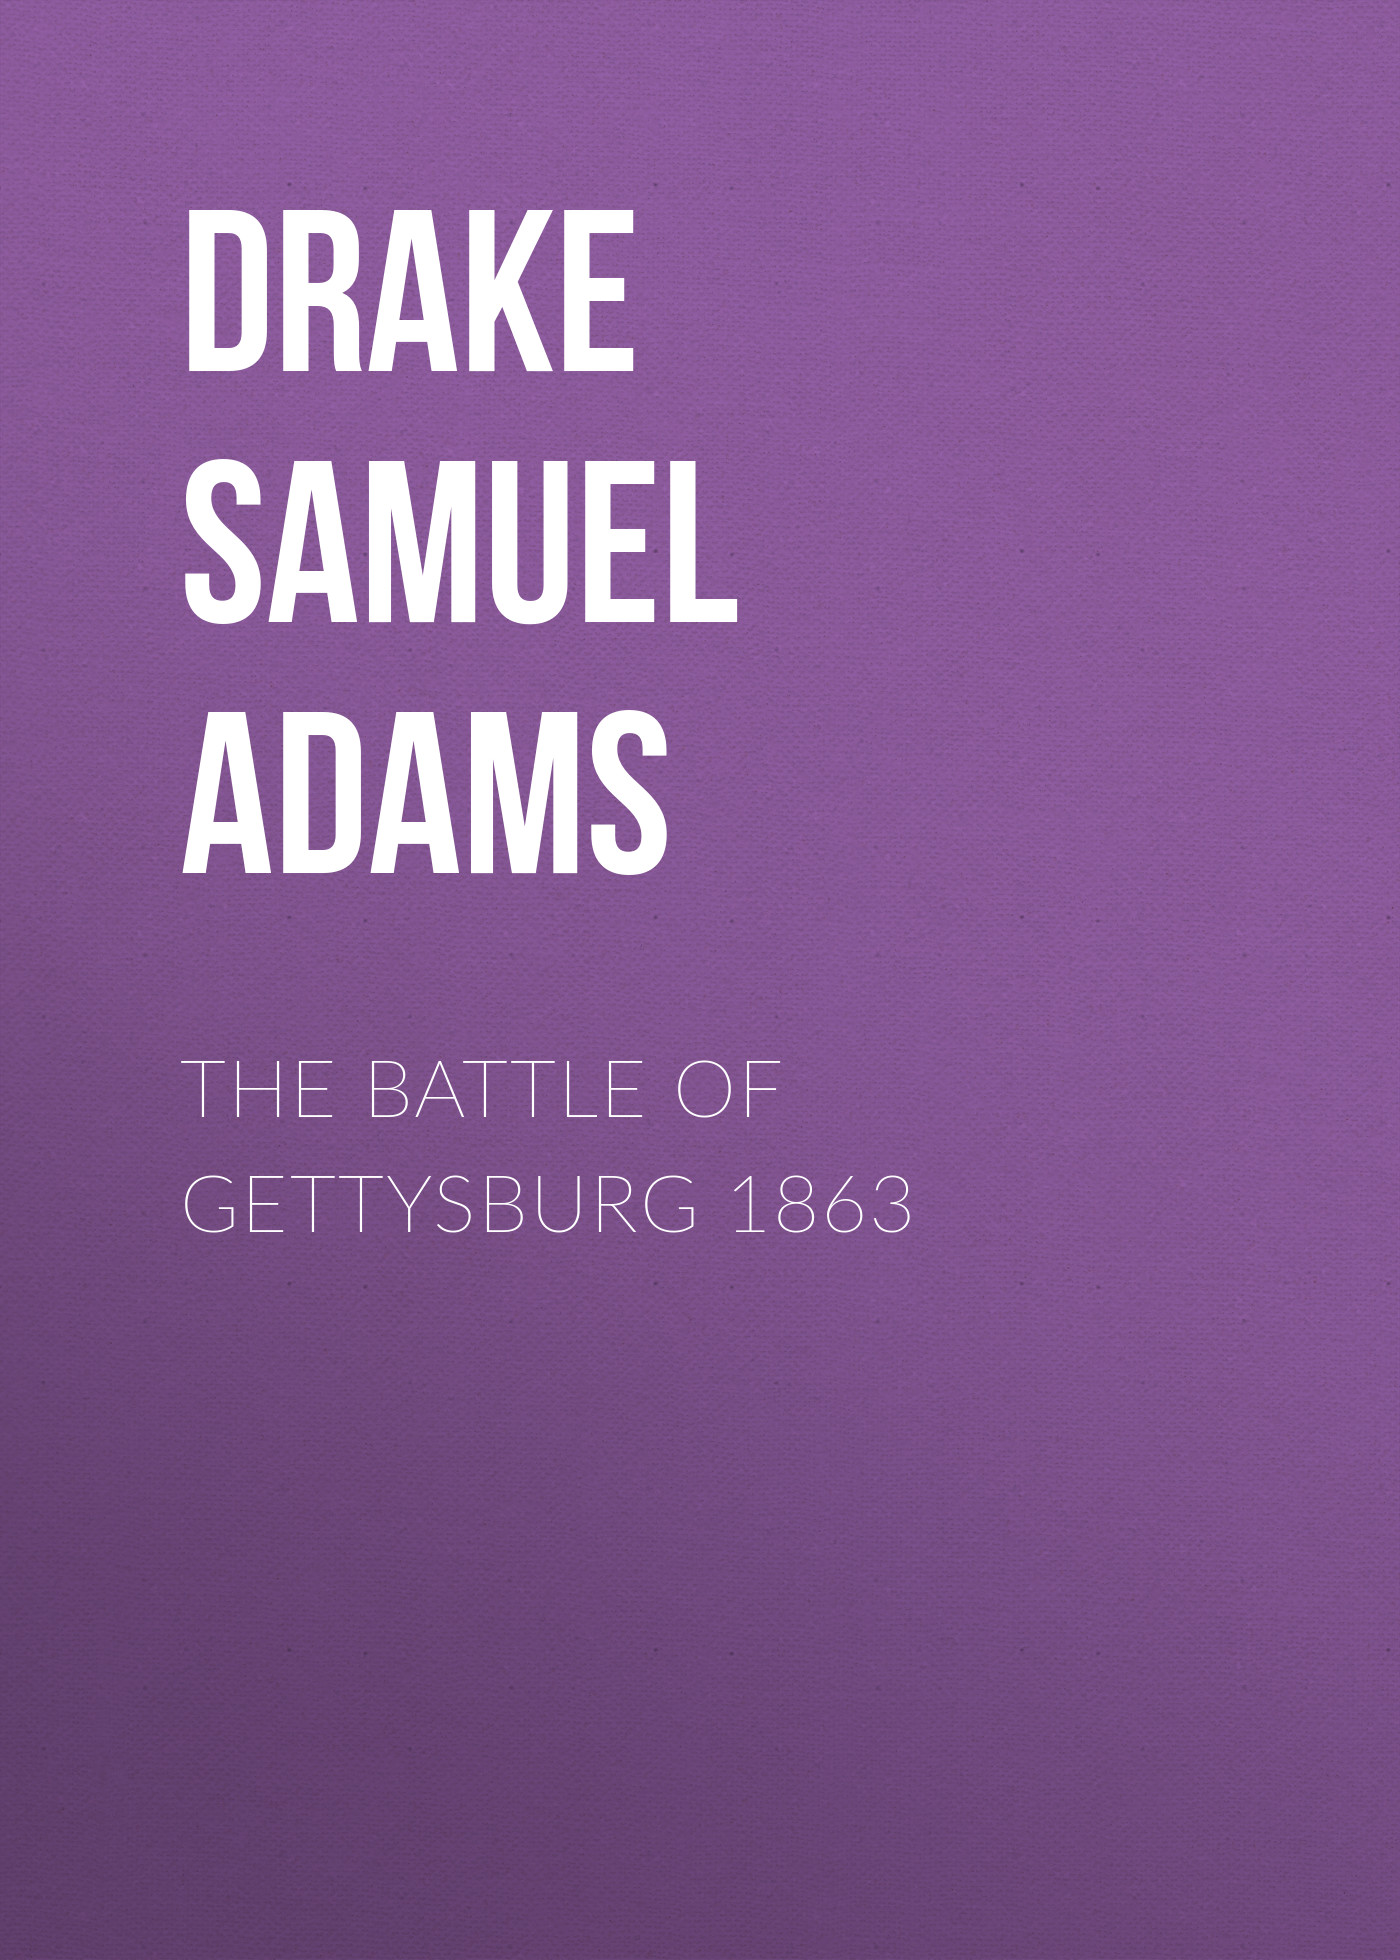 Drake Samuel Adams The Battle of Gettysburg 1863